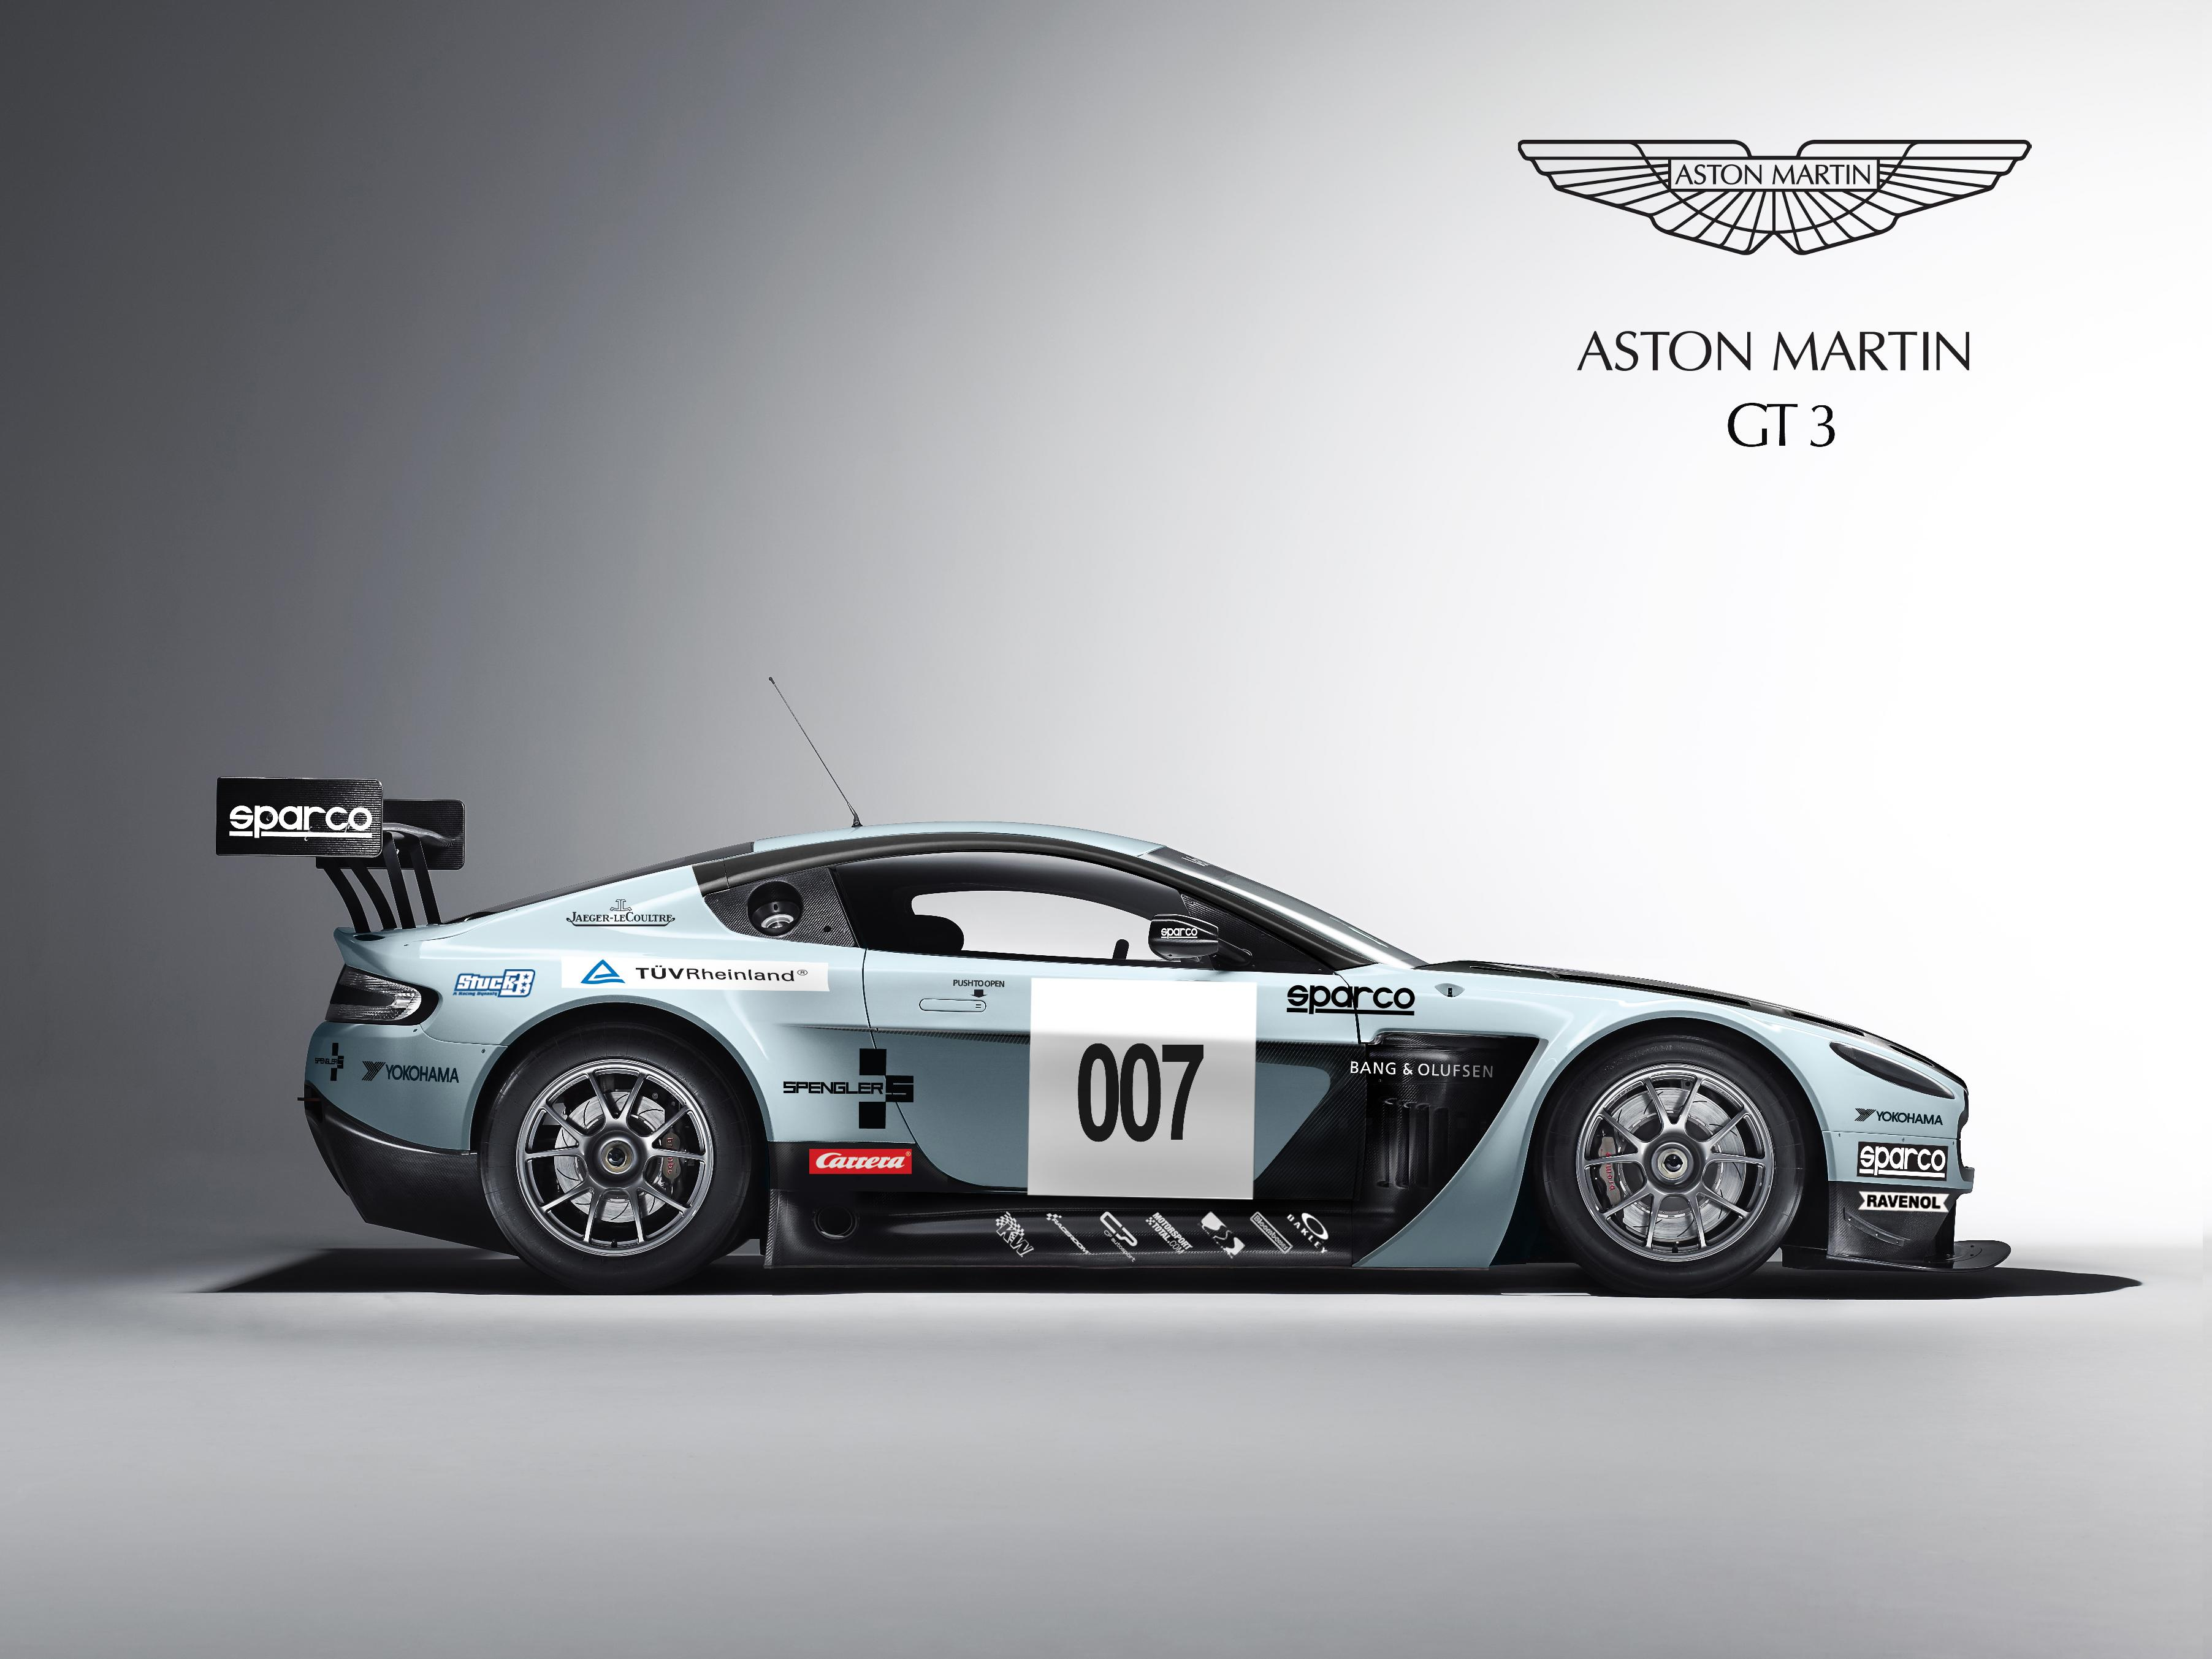 Aston Martin To Enter 8 Vantage Race Cars For Nurburgring 24 Hour